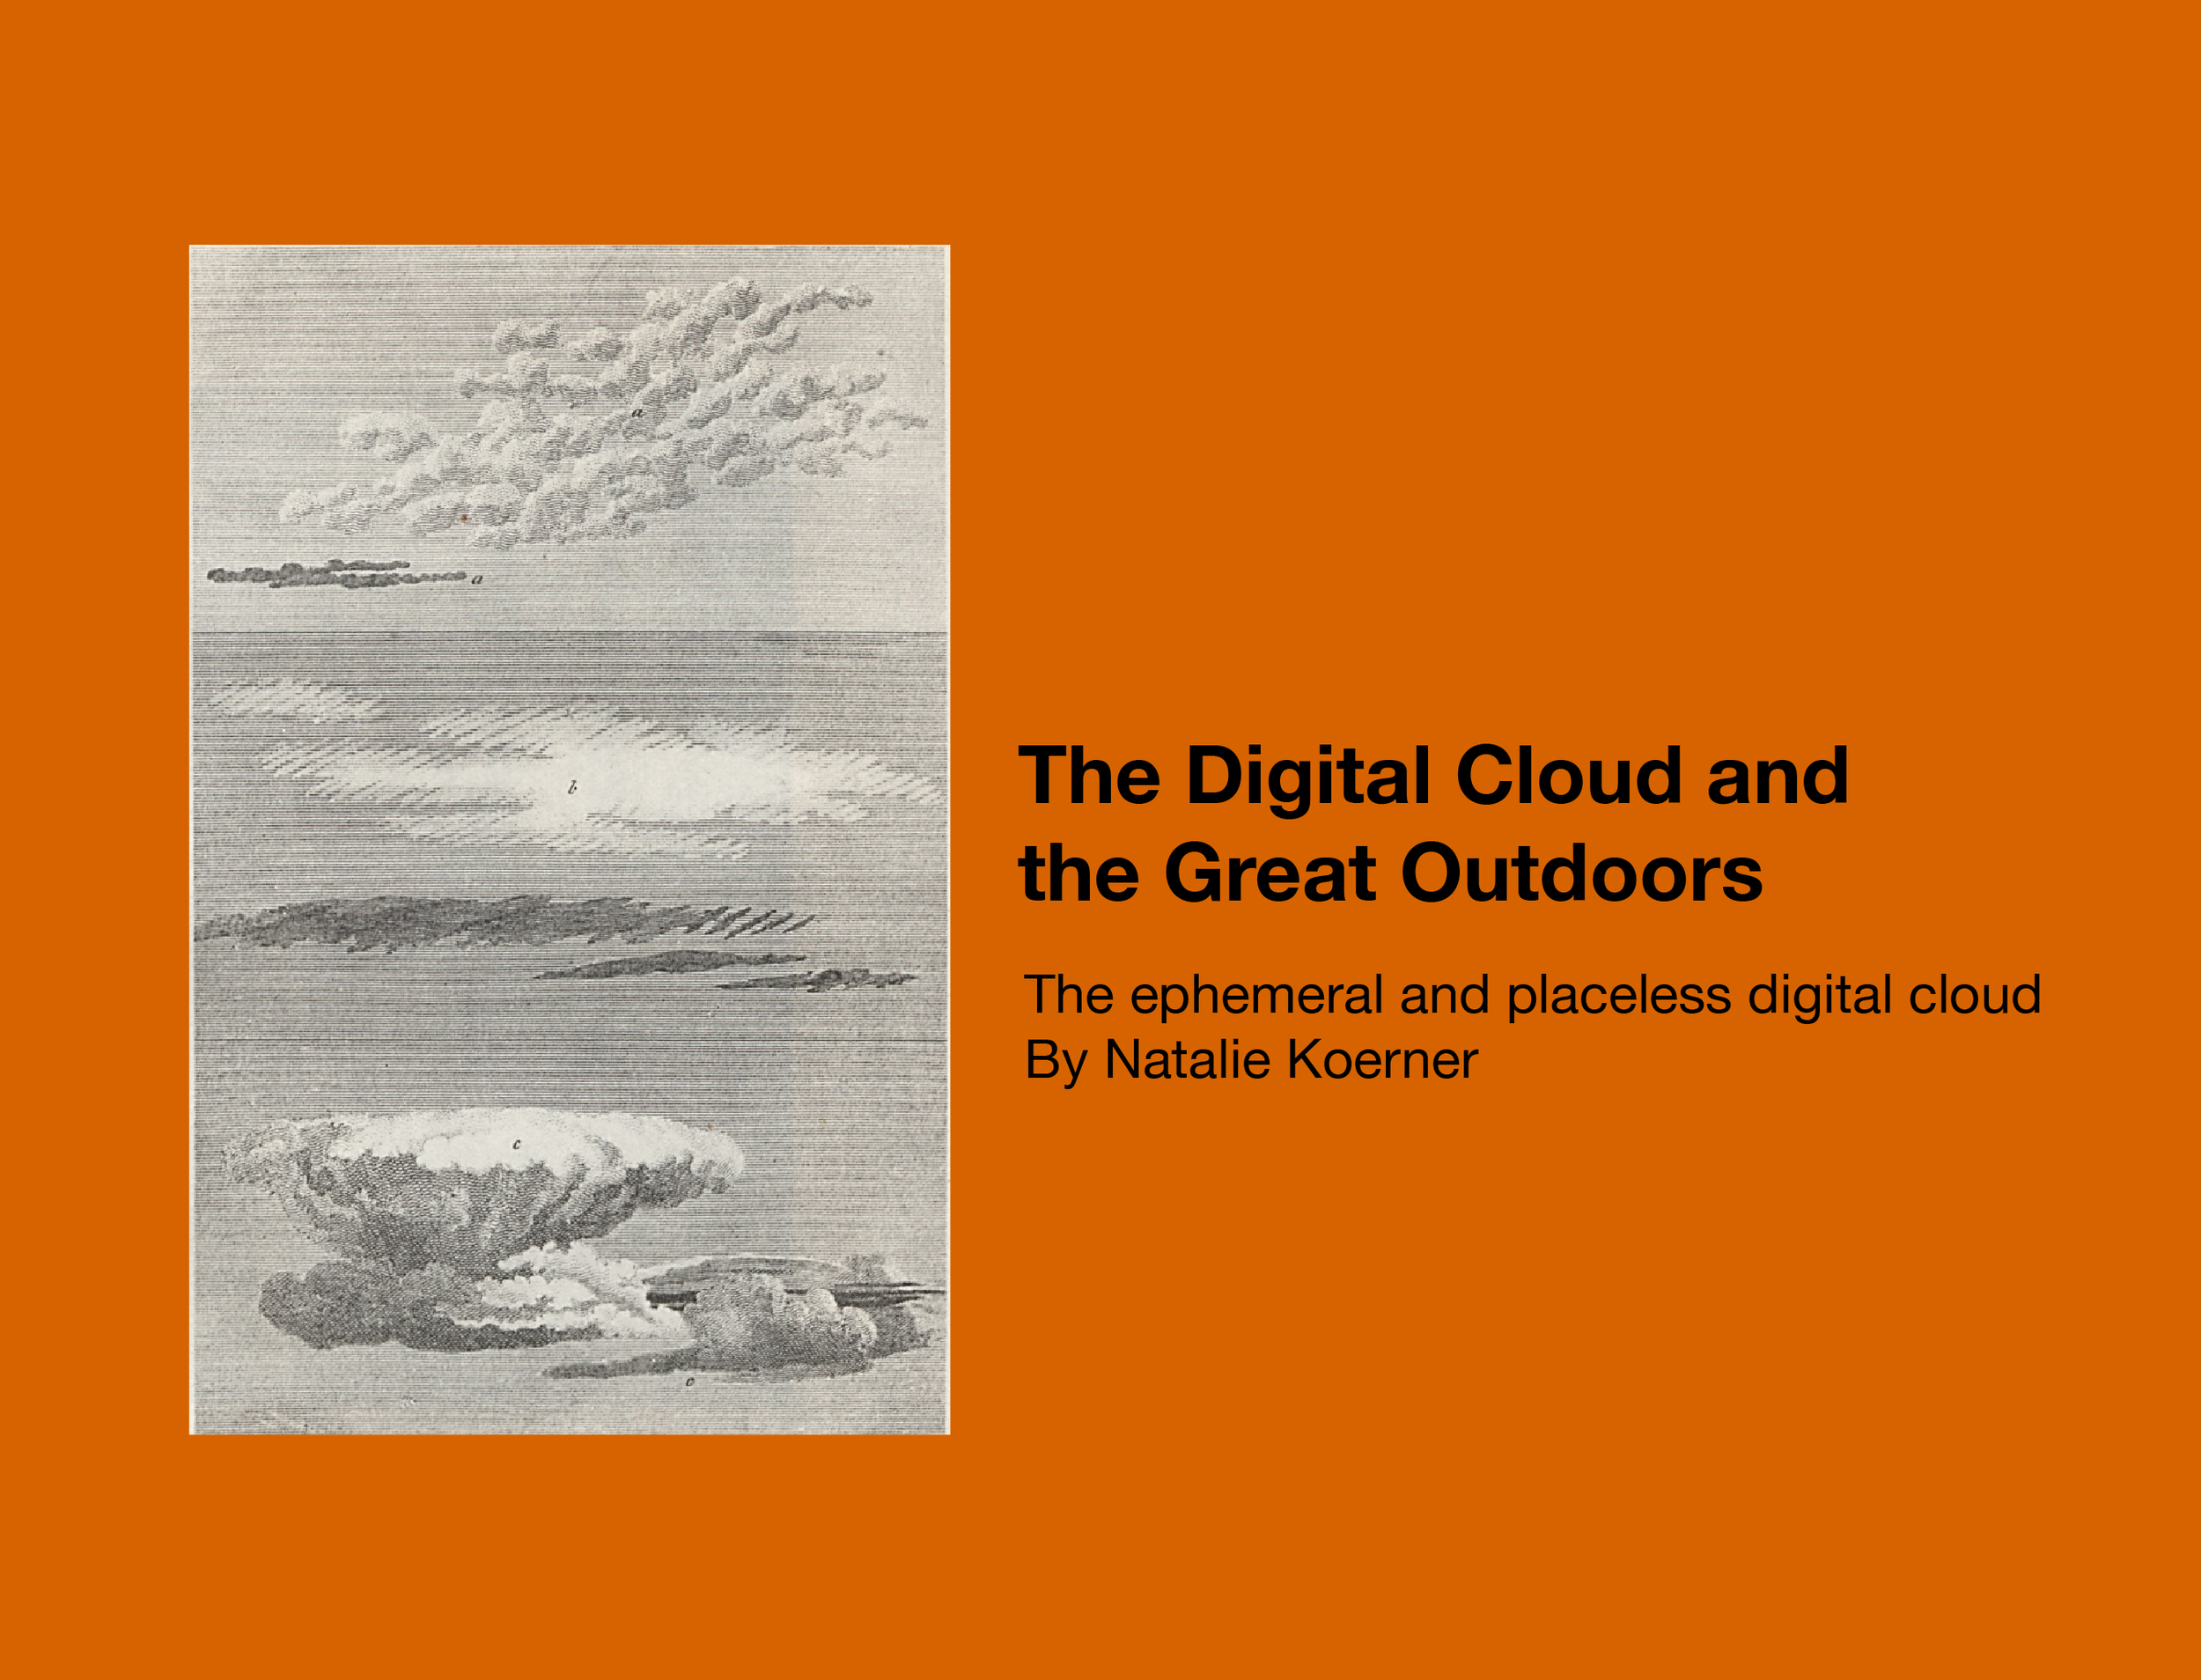 The Digital Cloud and the Great Outdoors